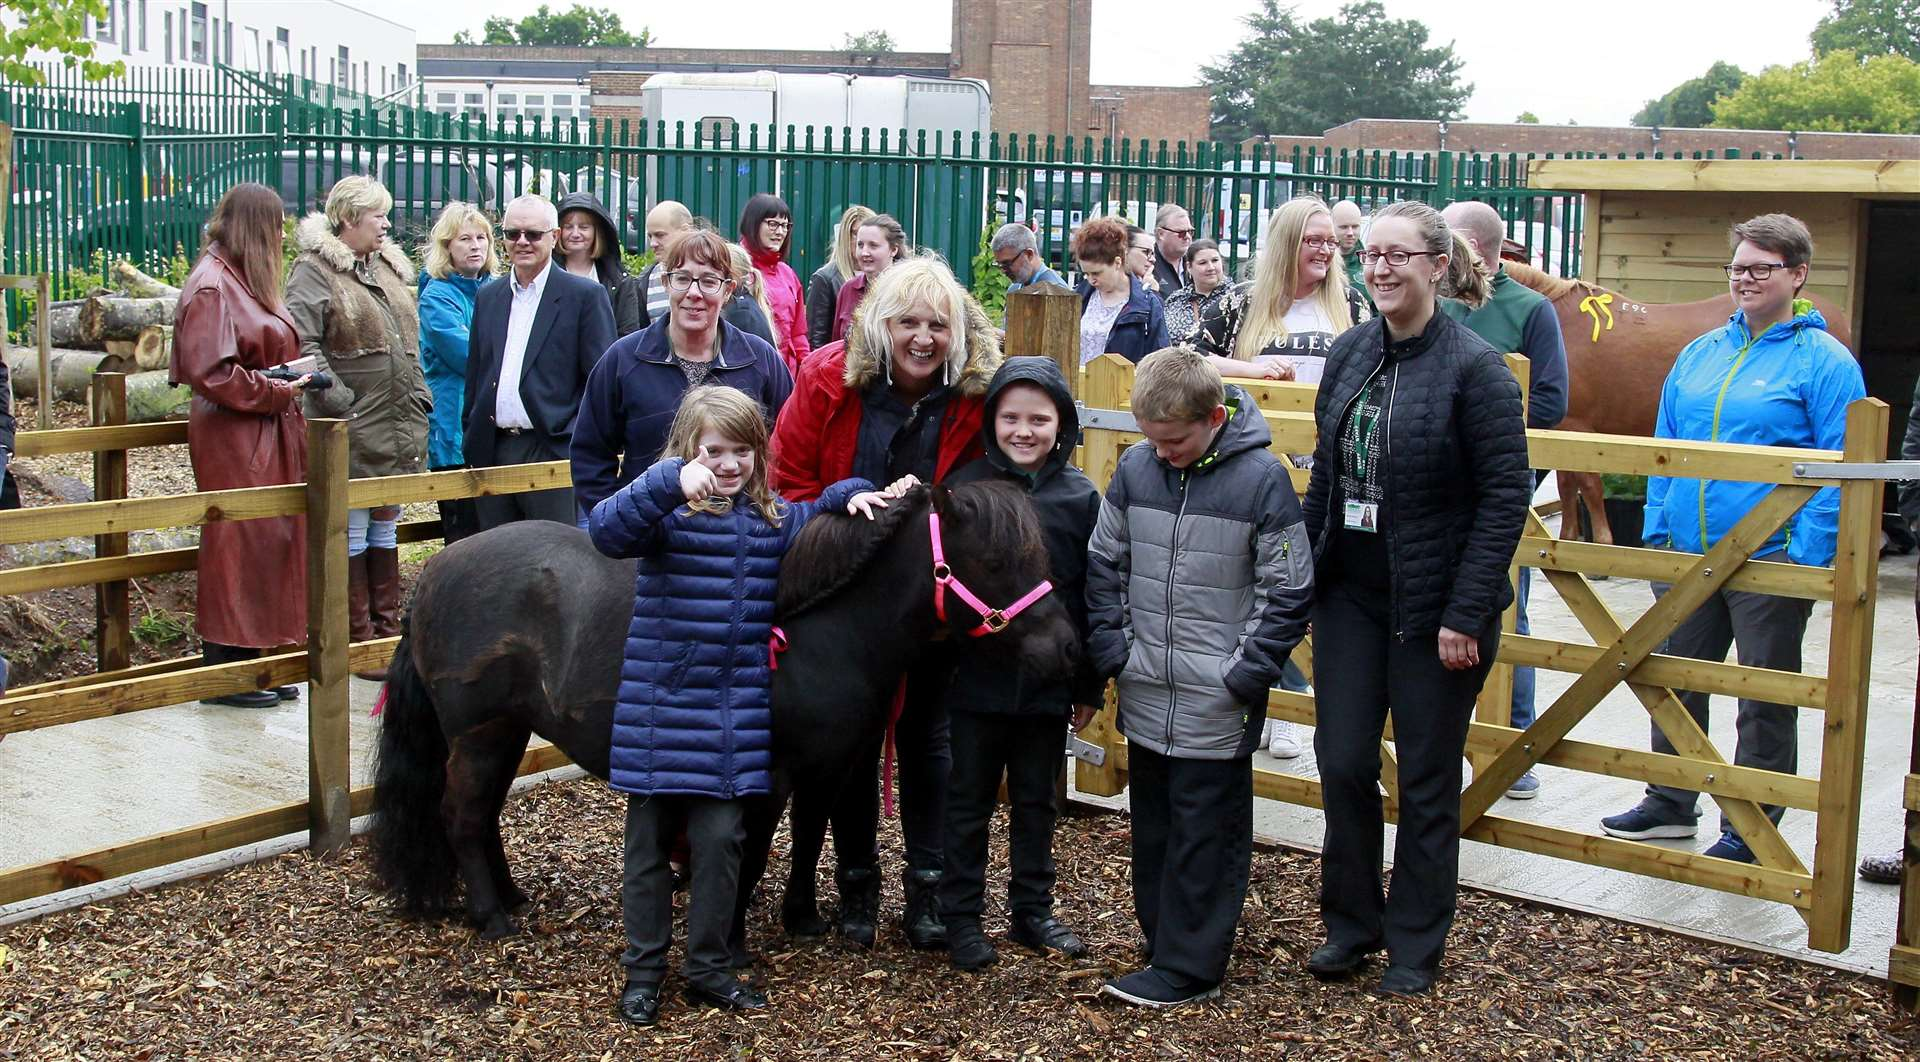 Volunteers have built stables at the school visited today by ponies from LuLu Pony Parties, pictured Ellie 8, Joe 8 and Raymond from Woodpecker class with volunteers and parents and LuLu the pony.Picture: Sean Aidan (11918561)